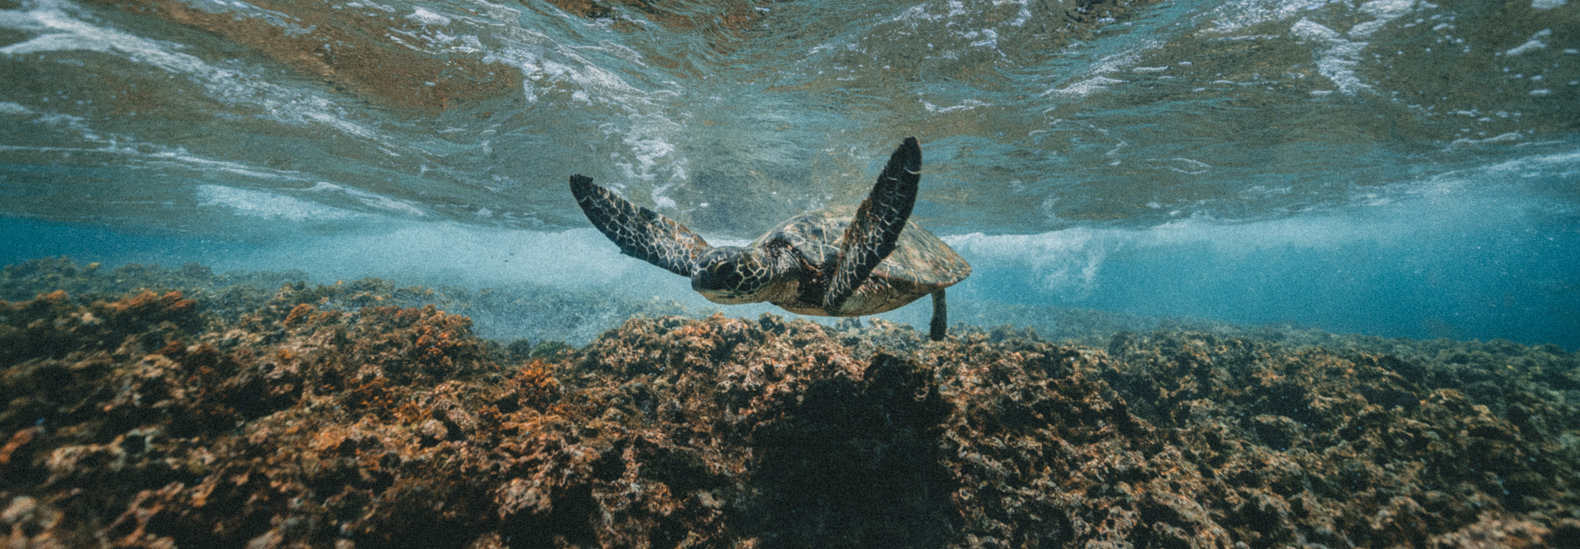 These resorts are working diligently at sea turtle conservation